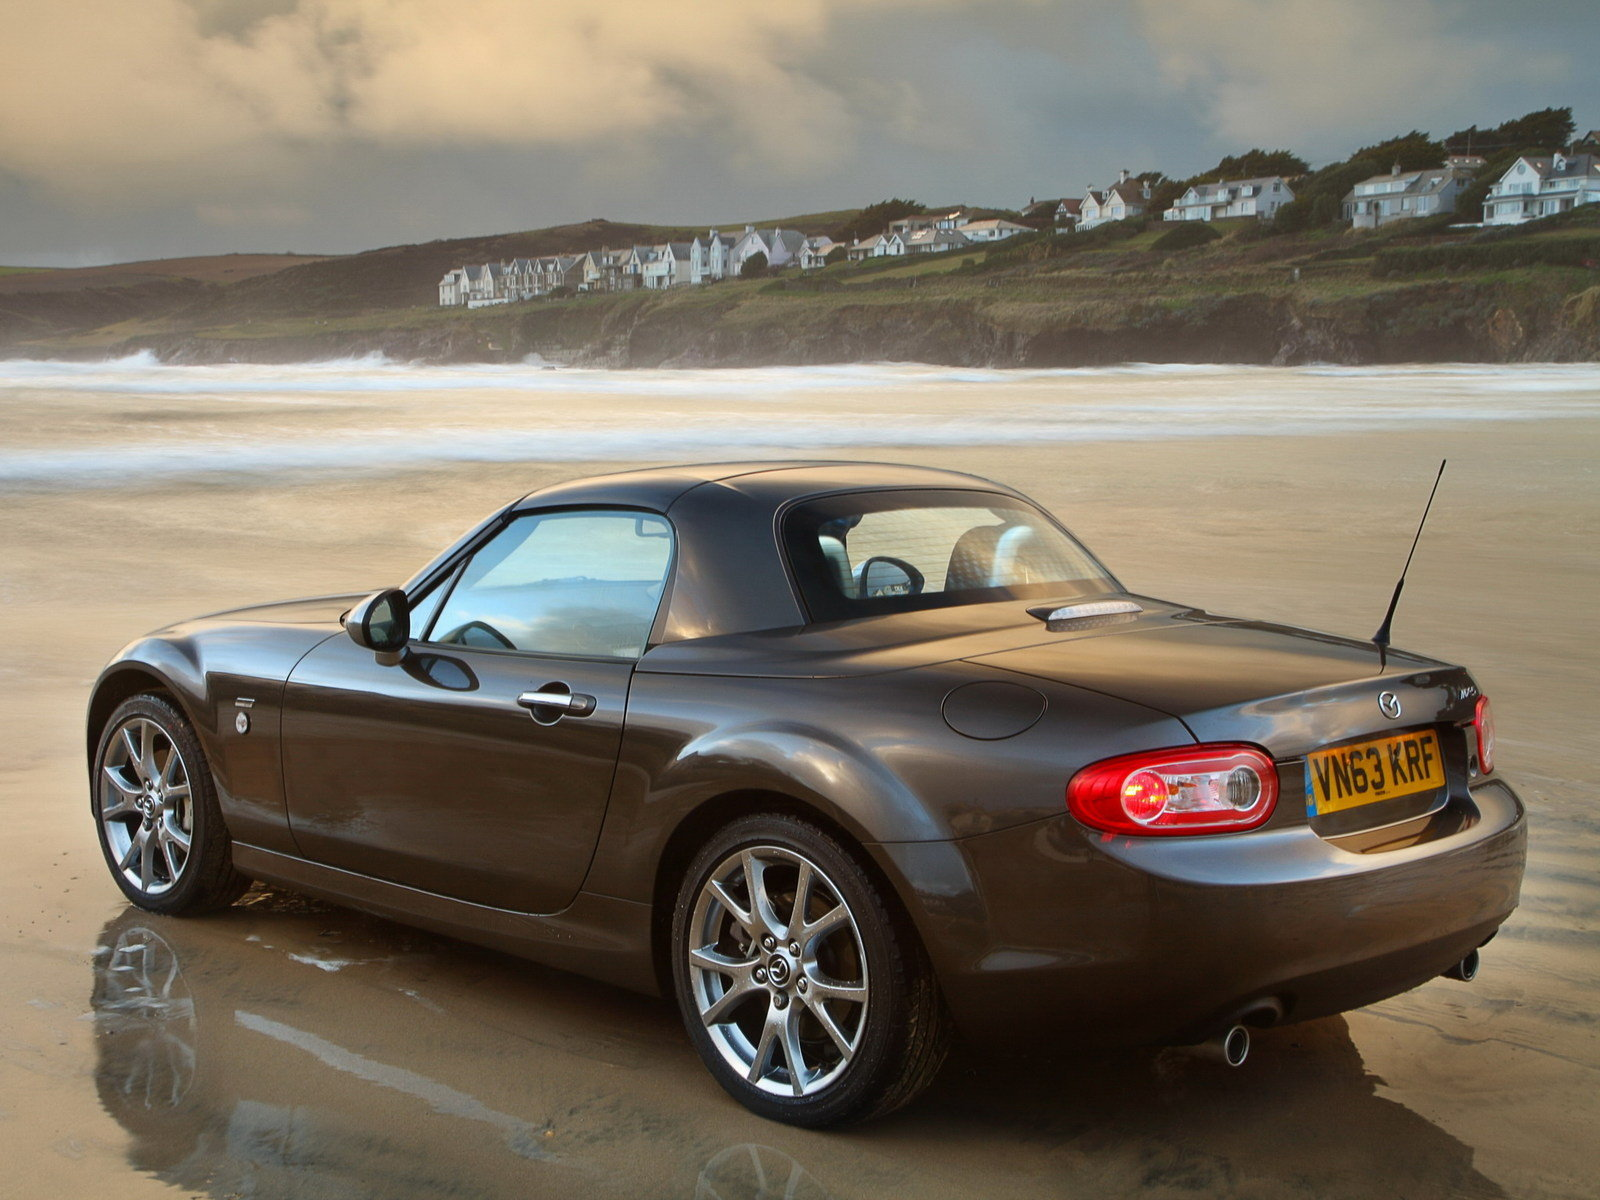 2014 mazda mx 5 sport venture picture 541654 car review top speed. Black Bedroom Furniture Sets. Home Design Ideas